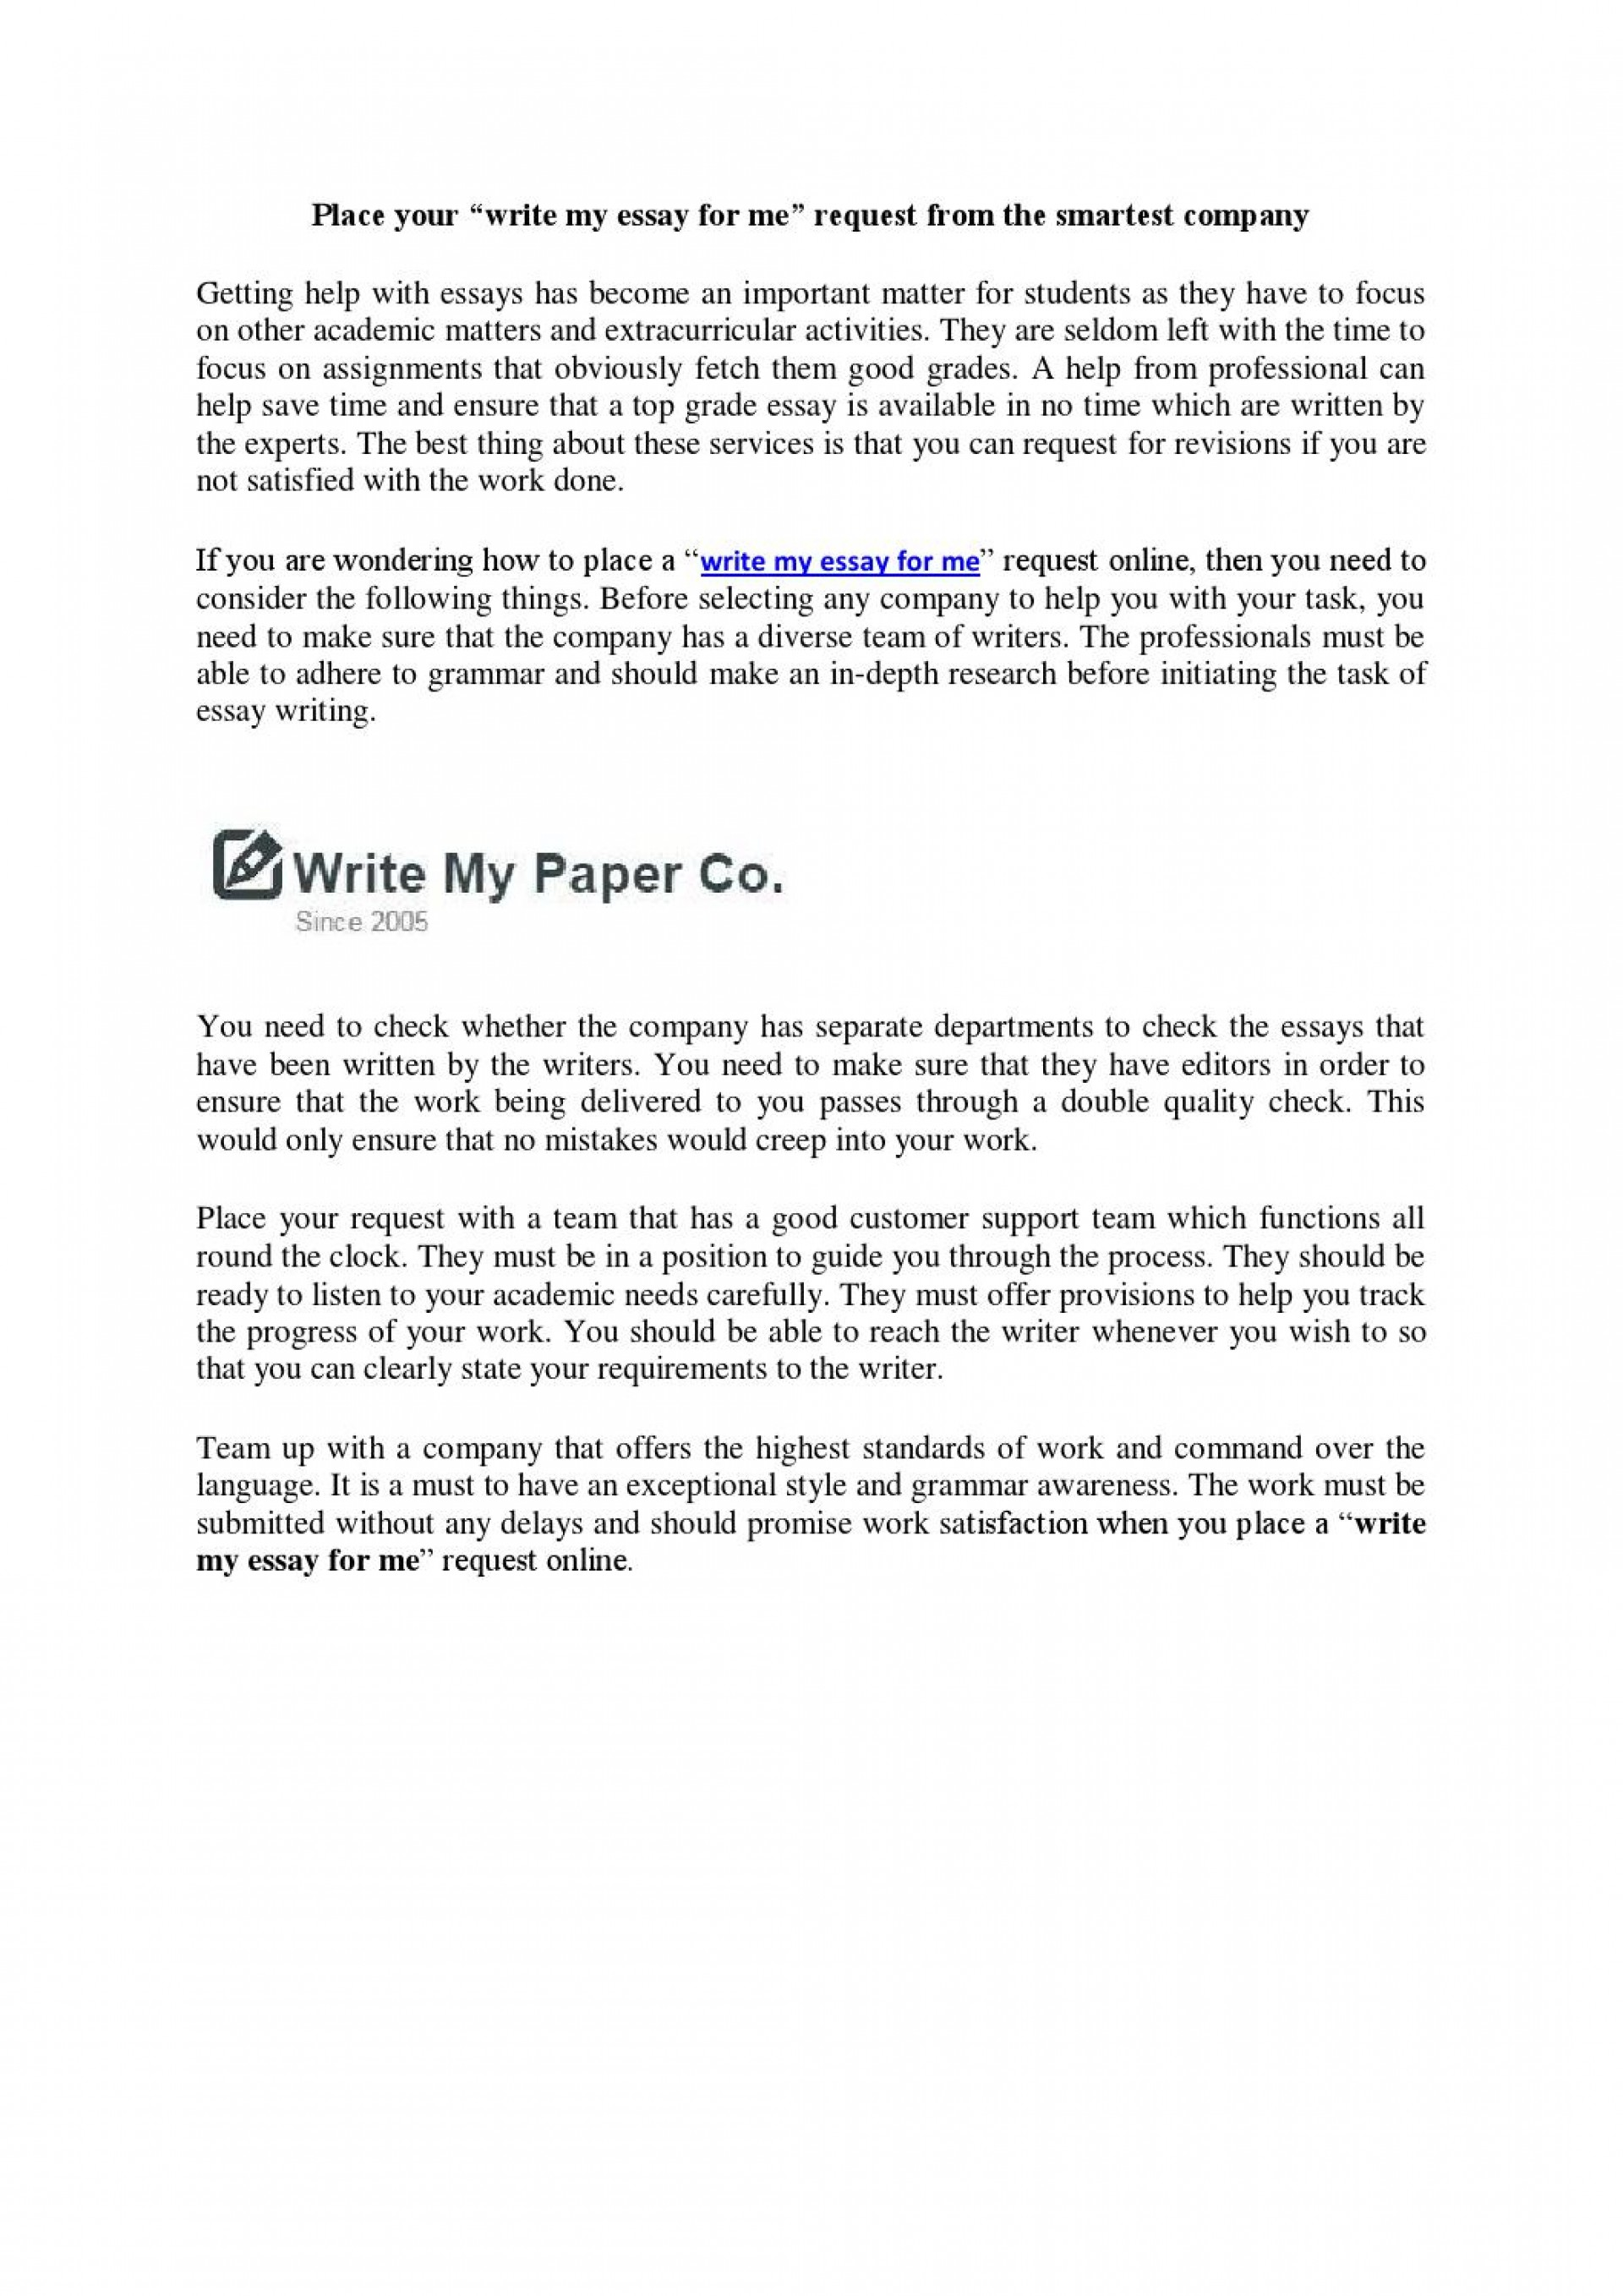 027 Do My Essay For Me Example Page 1 Impressive Write Please Free Online Custom Cheap 1920